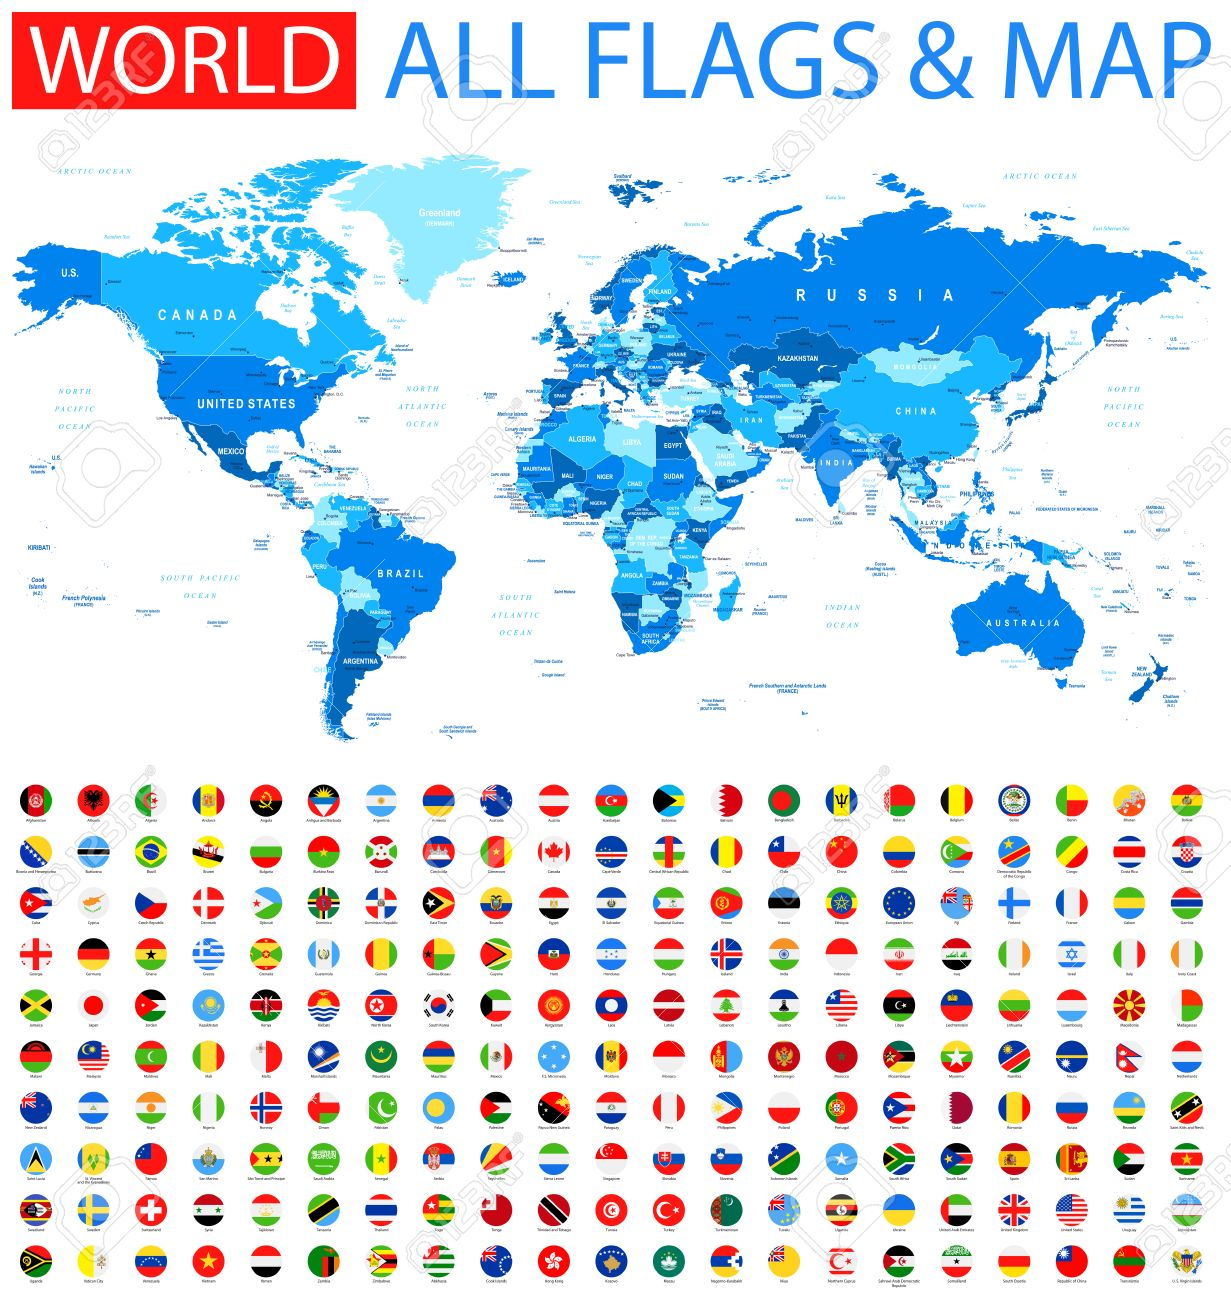 All round flags and world map royalty free cliparts vectors and all round flags and world map stock vector 61584521 gumiabroncs Choice Image